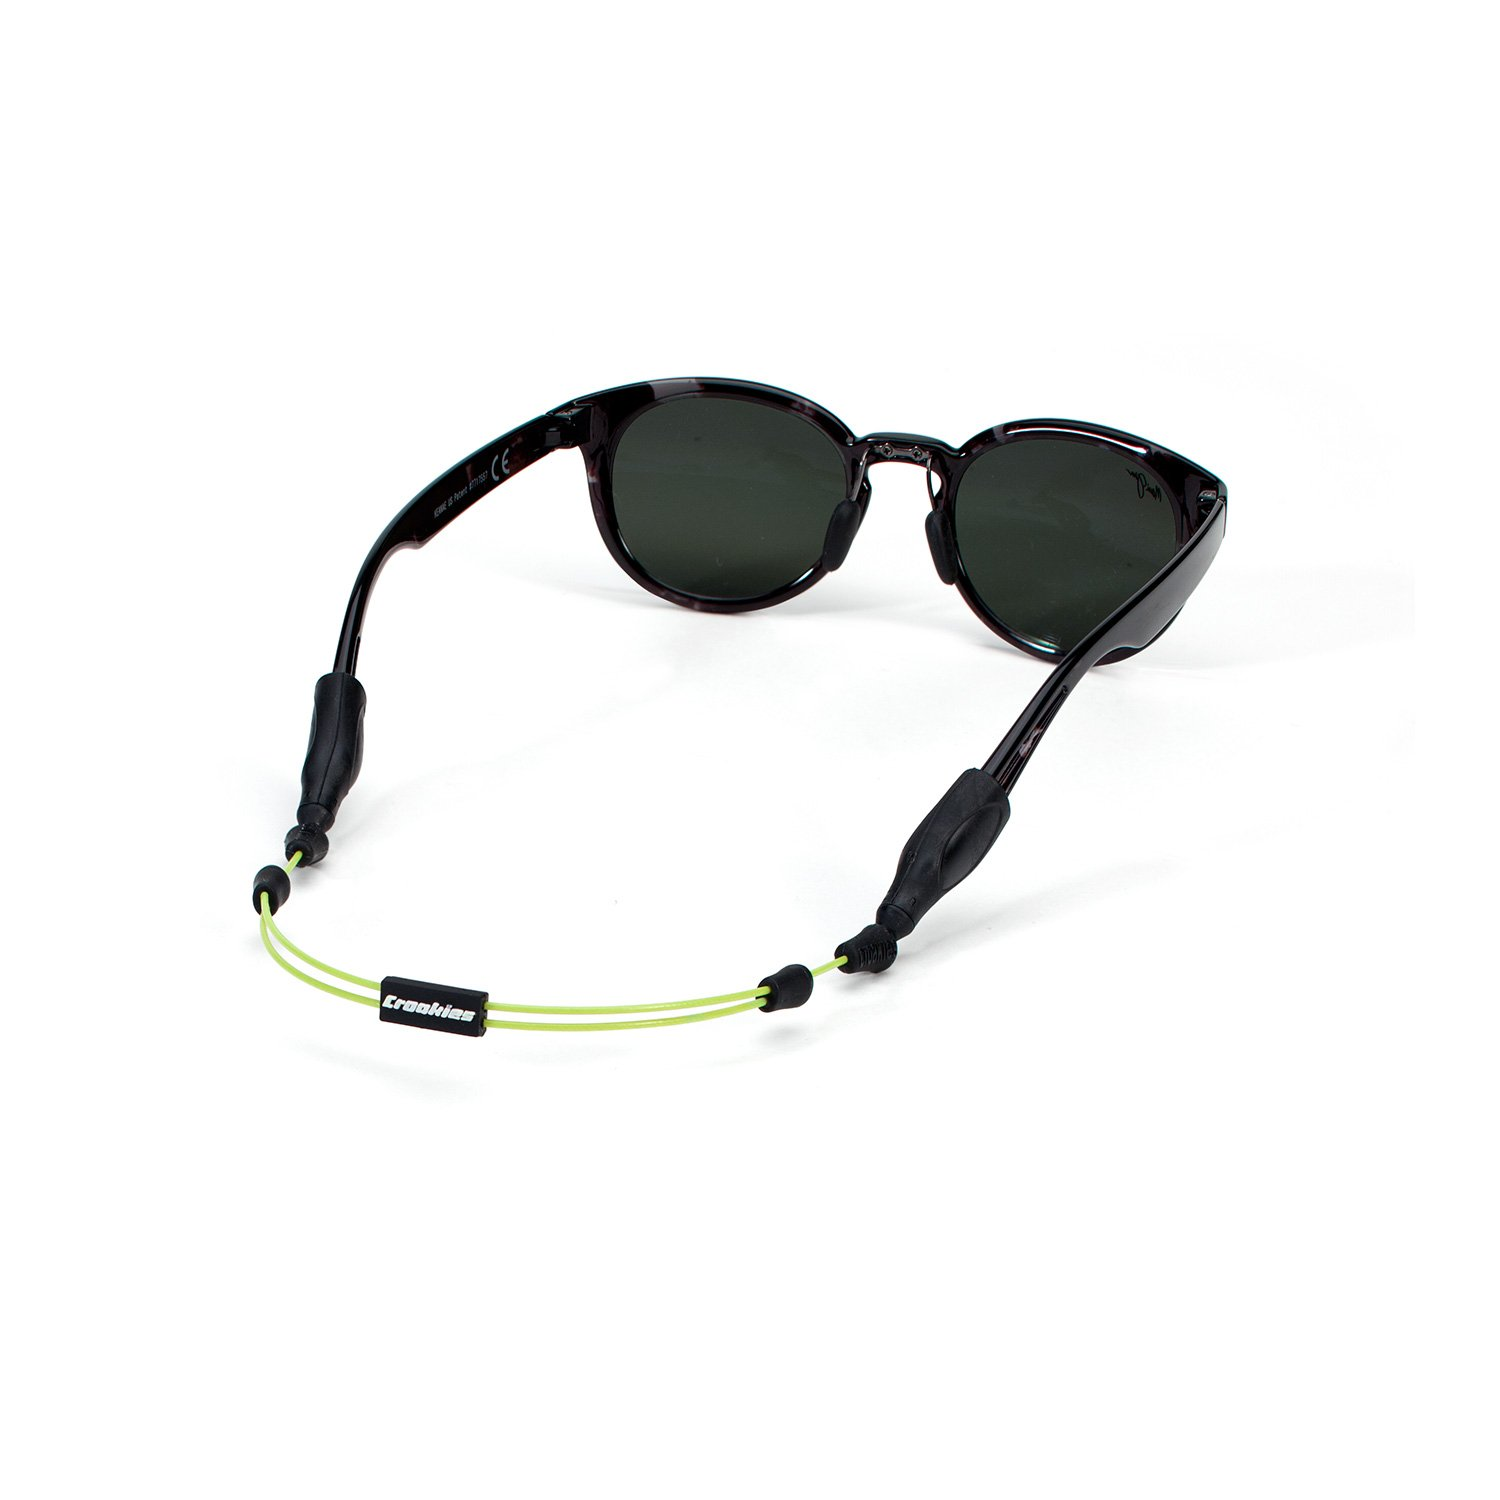 1cc45002bdd4 Details about Croakies Arc Endless System Sport Eyewear Retainer